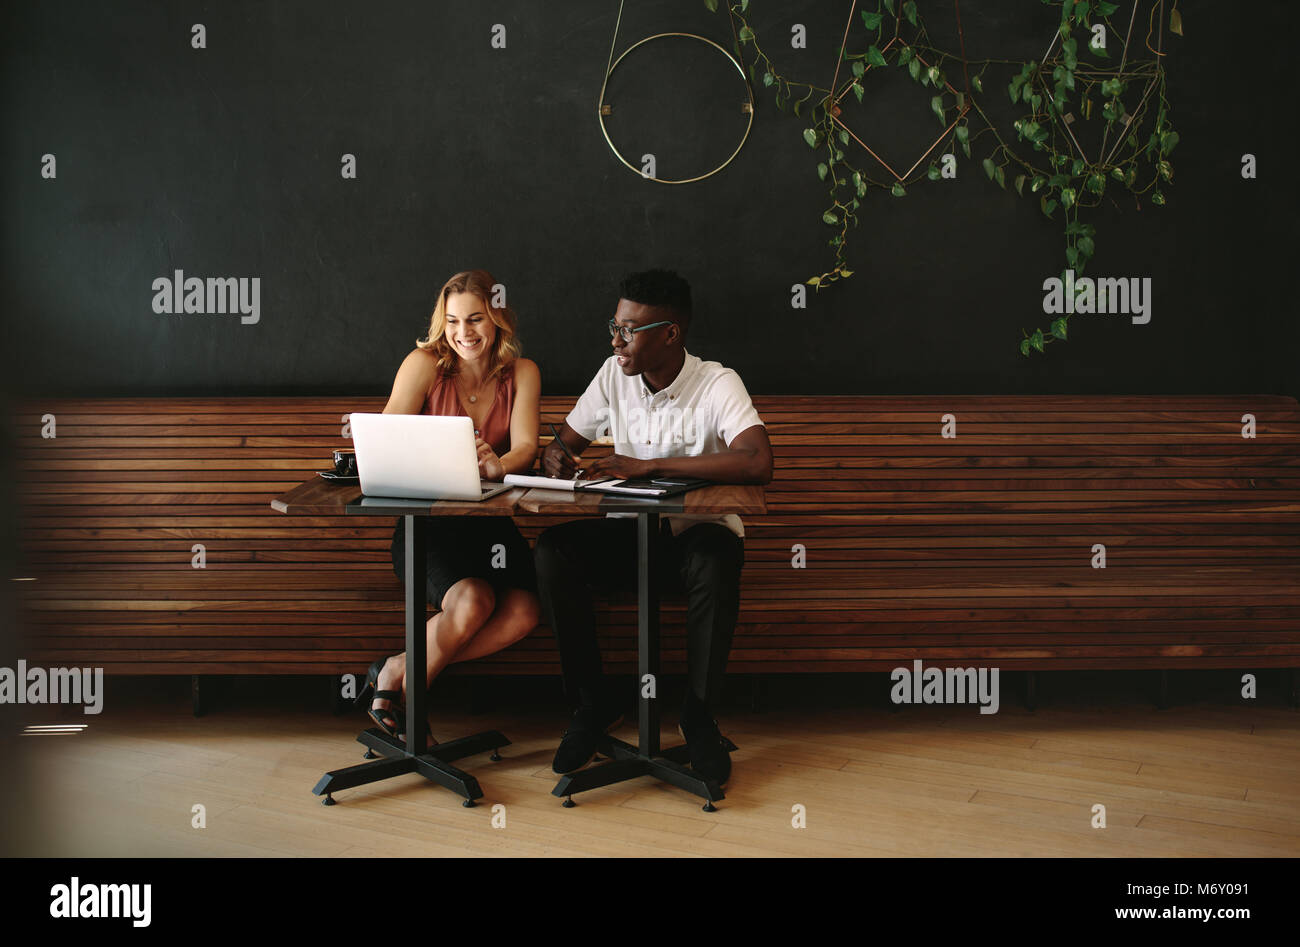 Business partners at a coffee shop working on a laptop computer. Friends sitting at a coffee table with laptop and - Stock Image